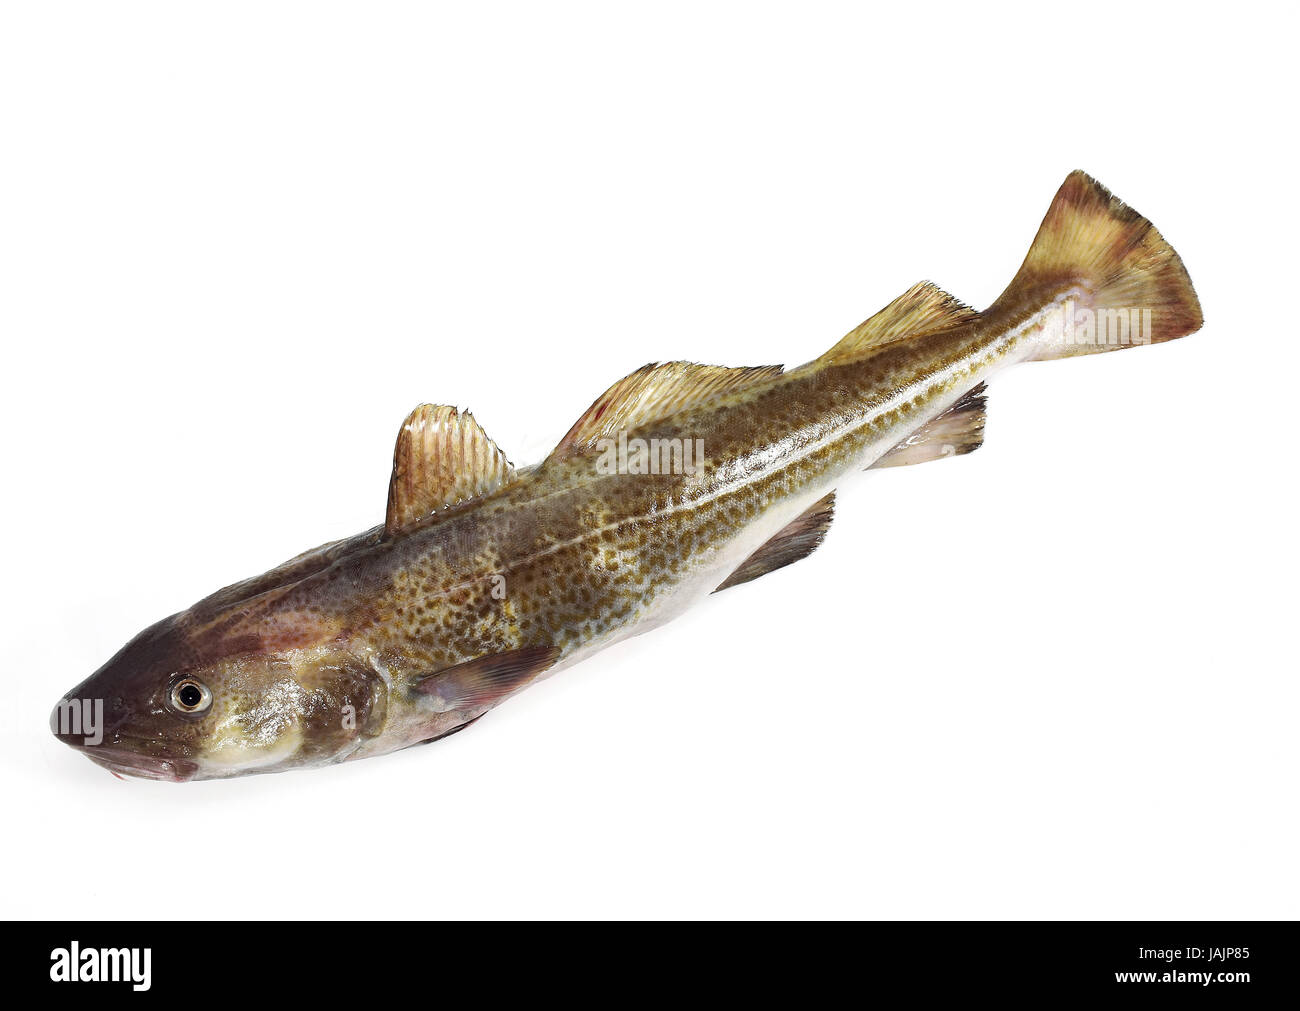 More freshly cod or cod,Gadus morhua,white background, - Stock Image